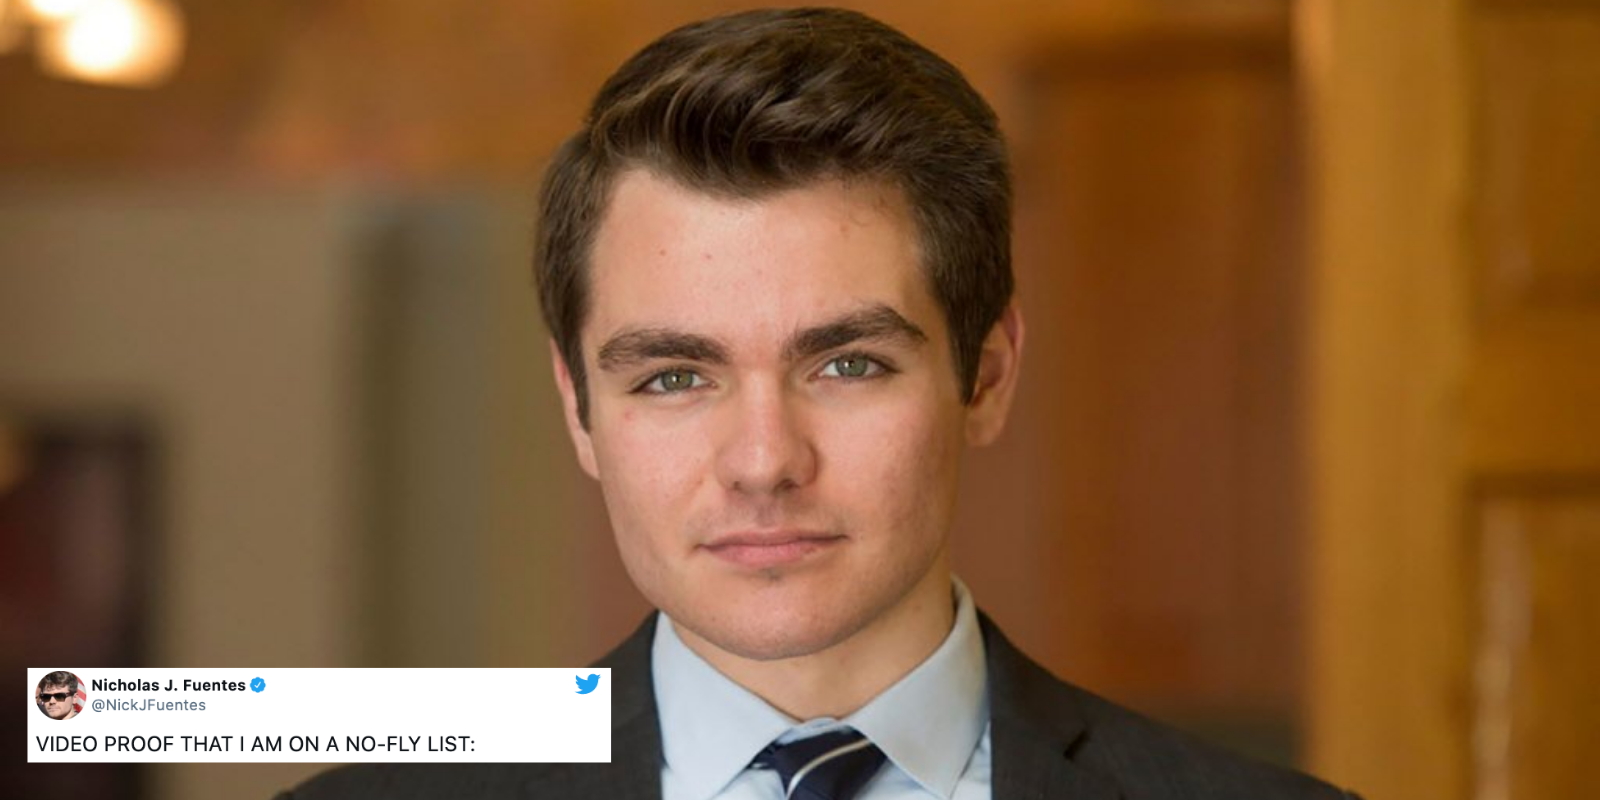 Controversial right-wing provocateur Nick Fuentes reportedly placed on 'no-fly list'